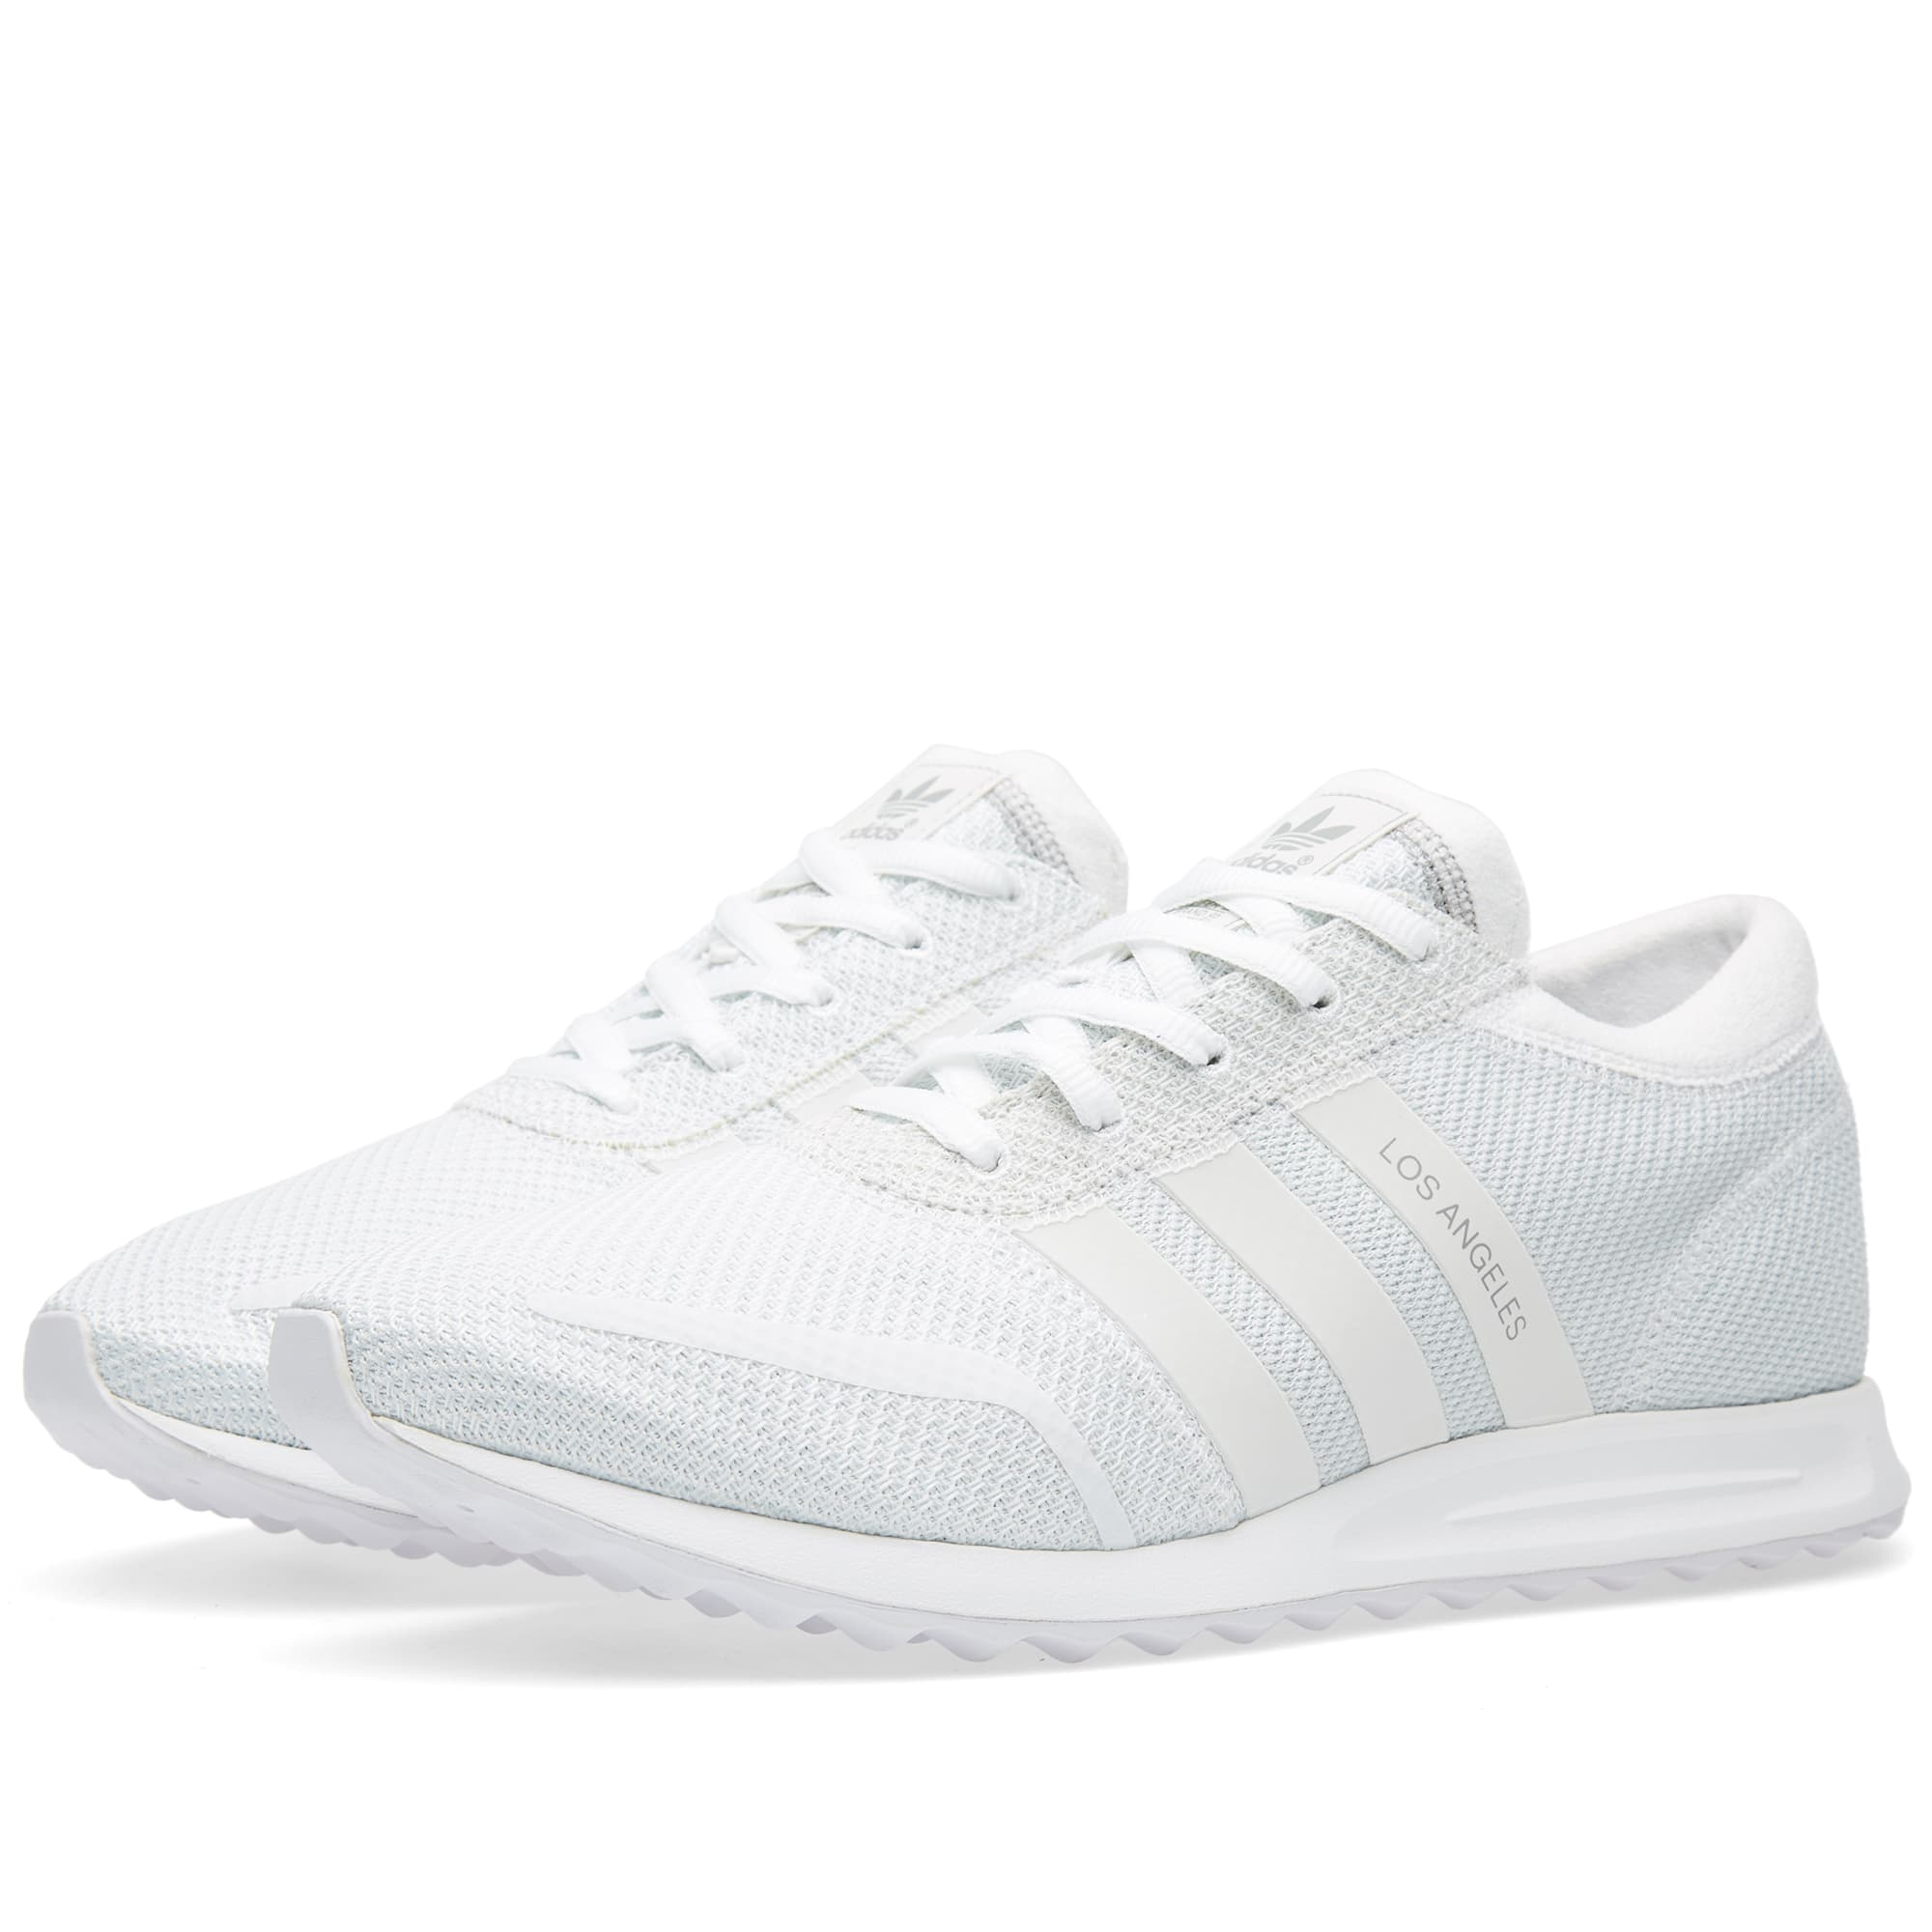 low priced 8d870 d6e2b Adidas Los Angeles White   Vintage White   END.